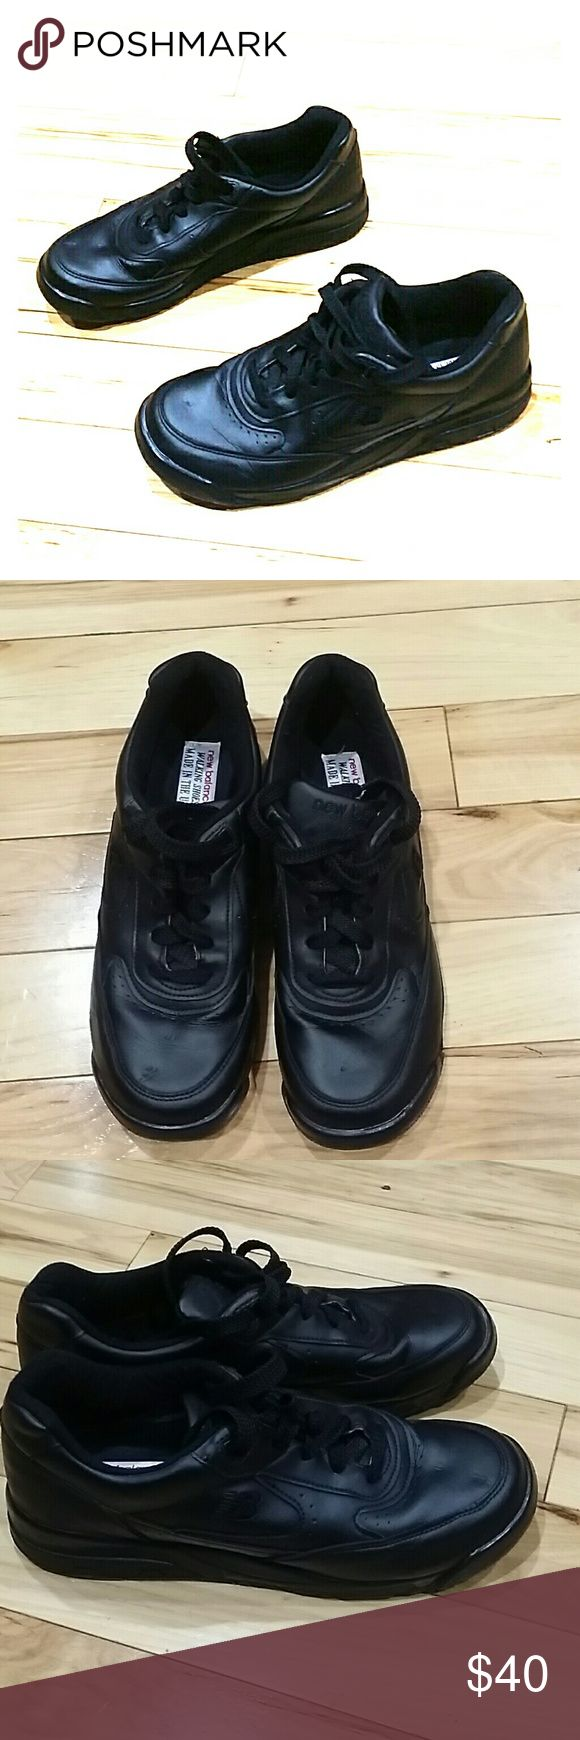 New Balance 800 made in the USA size 9 New Balance women's shoes black 800 made in the USA walking shoes size 9 WW 800 BK . They're walking shoes very comfortable. Very good condition. I'm selling them at a great price. Get them today! New Balance Shoes Athletic Shoes